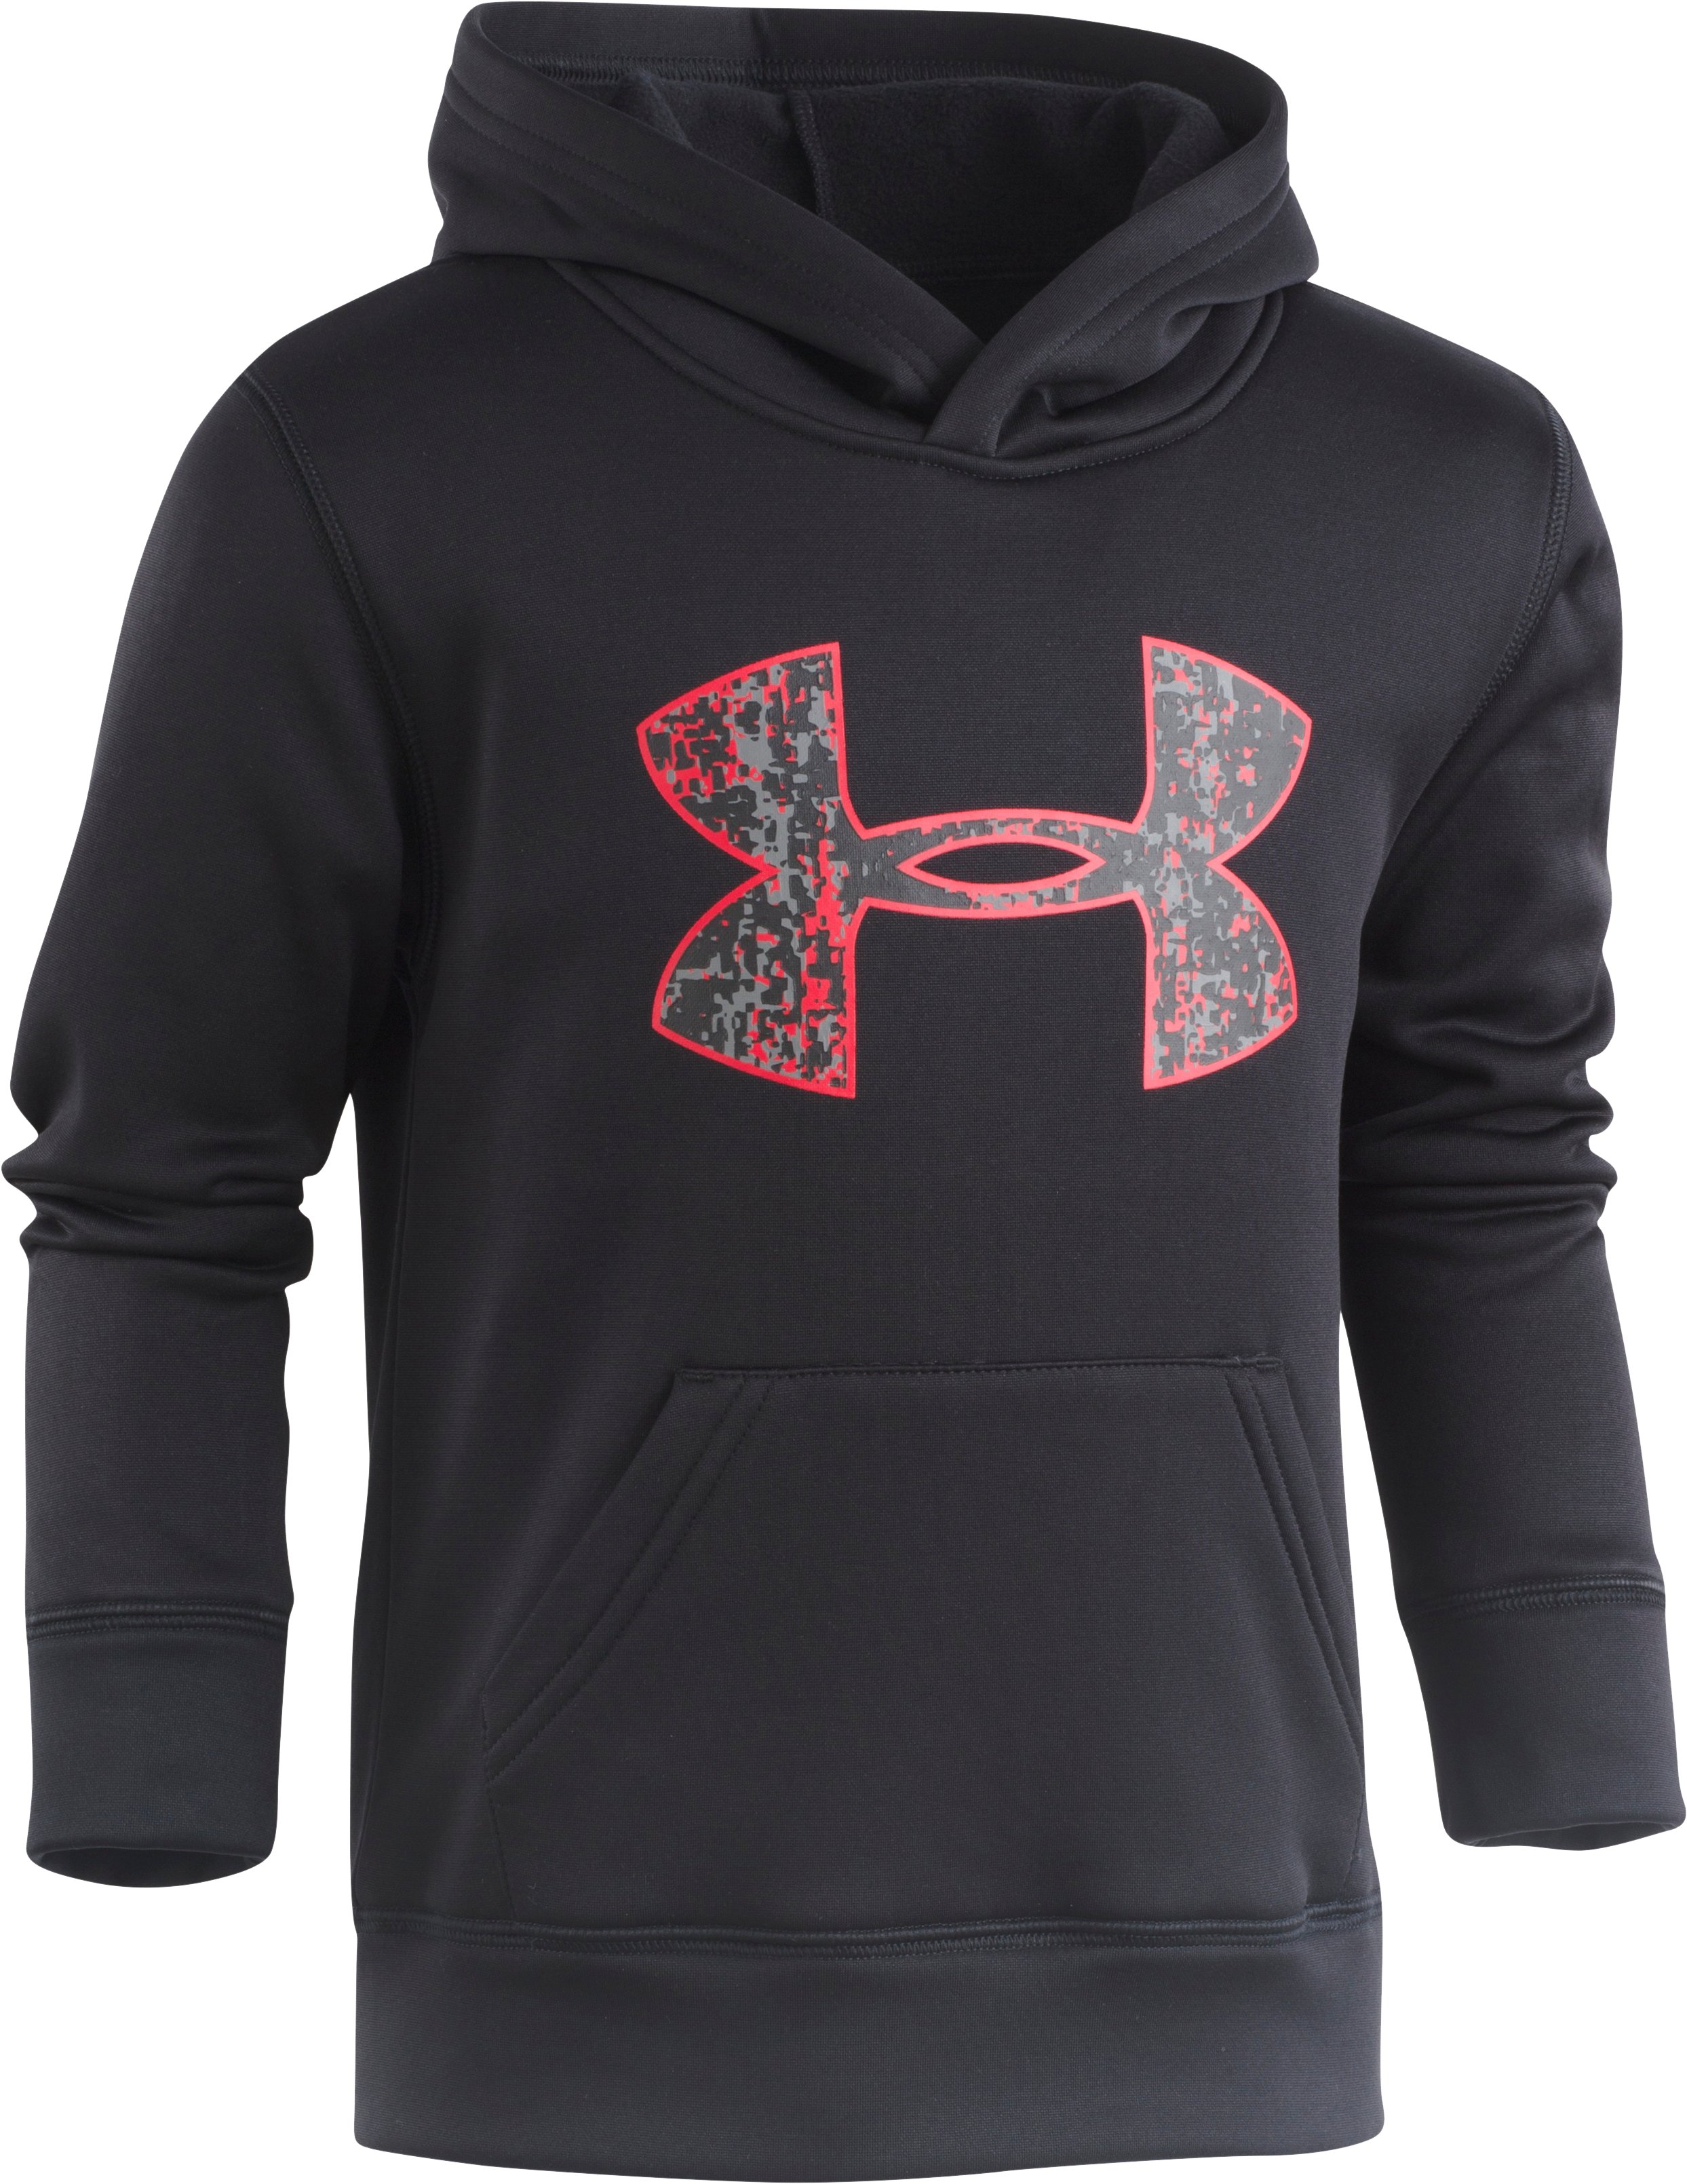 Boys' Pre-School UA Digital City Pullover Hoodie, Black , Laydown